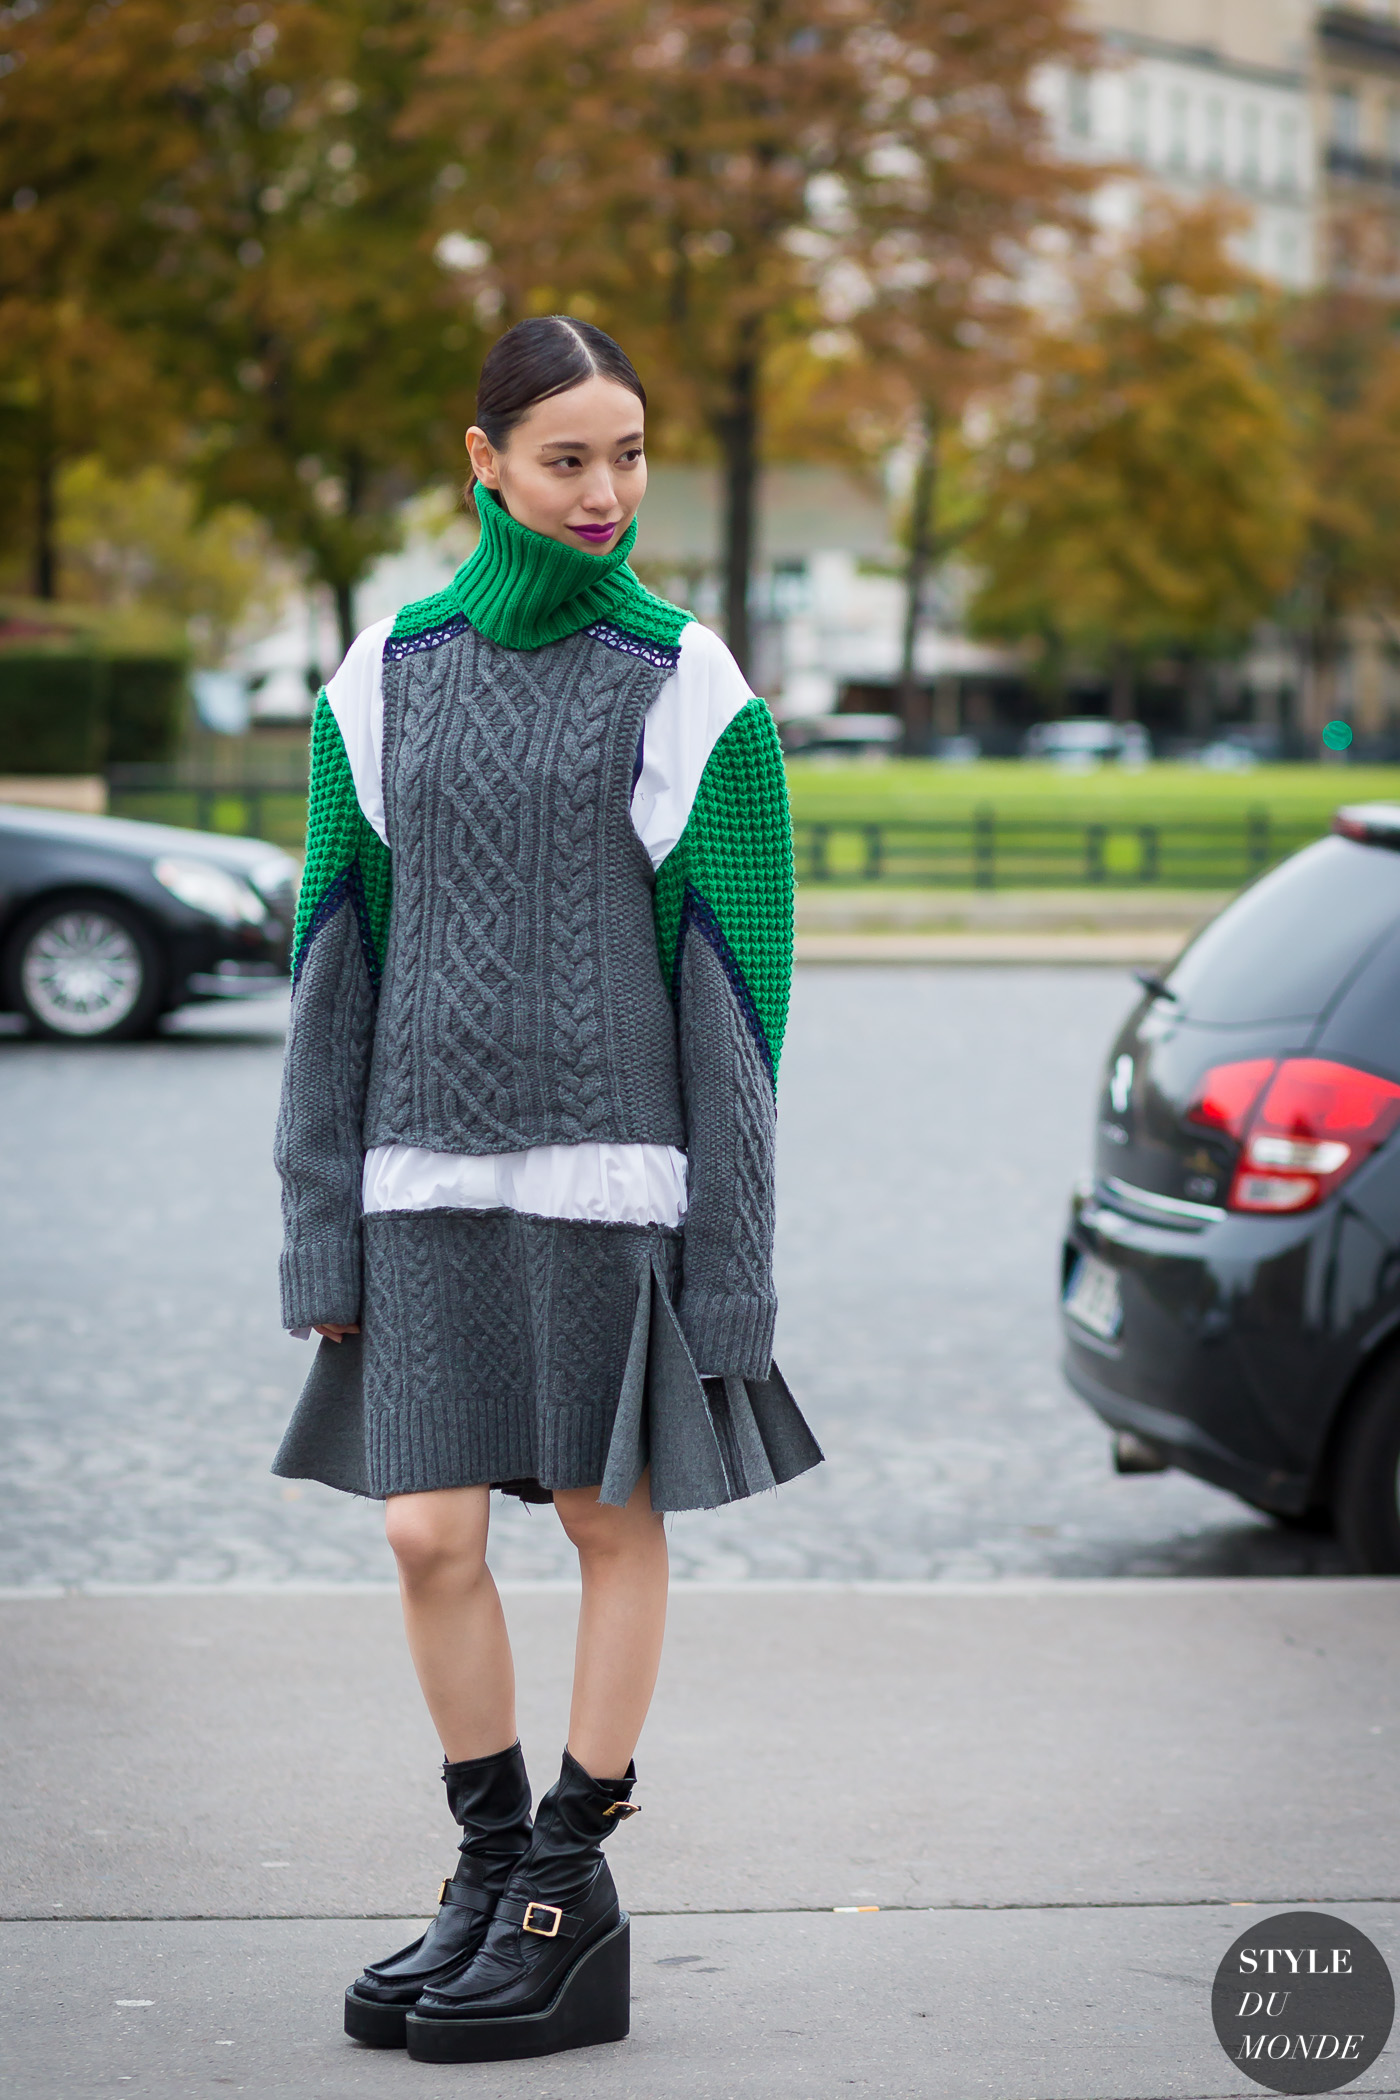 After Sacai Street Style Street Fashion Streetsnaps by STYLEDUMONDE Street Style Fashion Photography